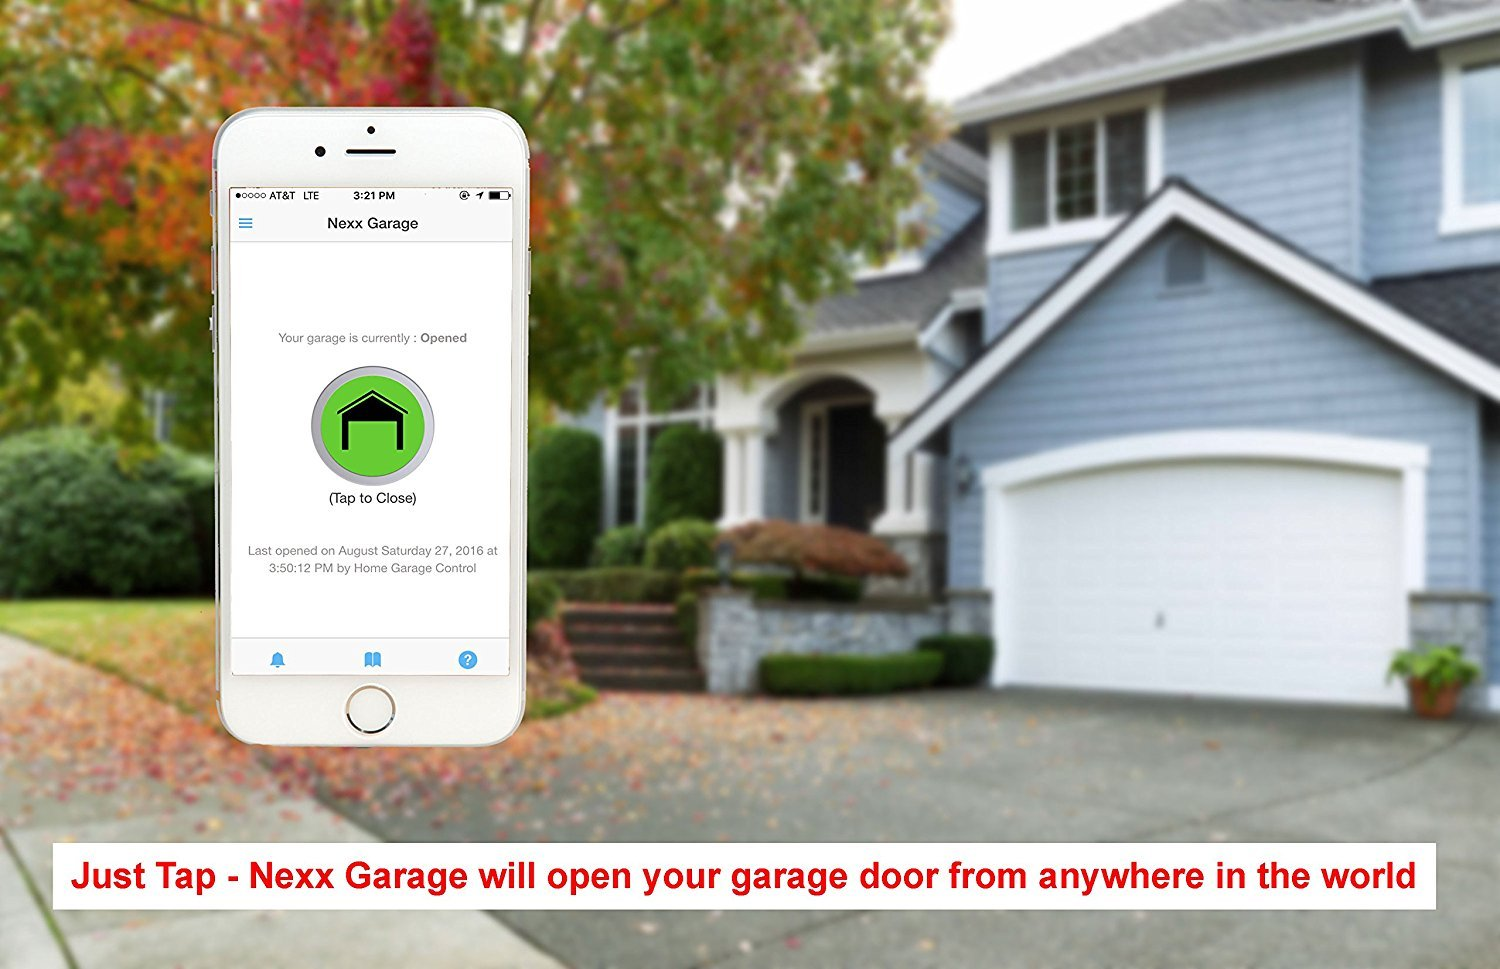 Nexx garage nxg 100 nxg remote compatible door openers control nexx garage nxg 100 nxg remote compatible door openers control using smart phone amazon alexa and google assistant enabled devices white amazon rubansaba